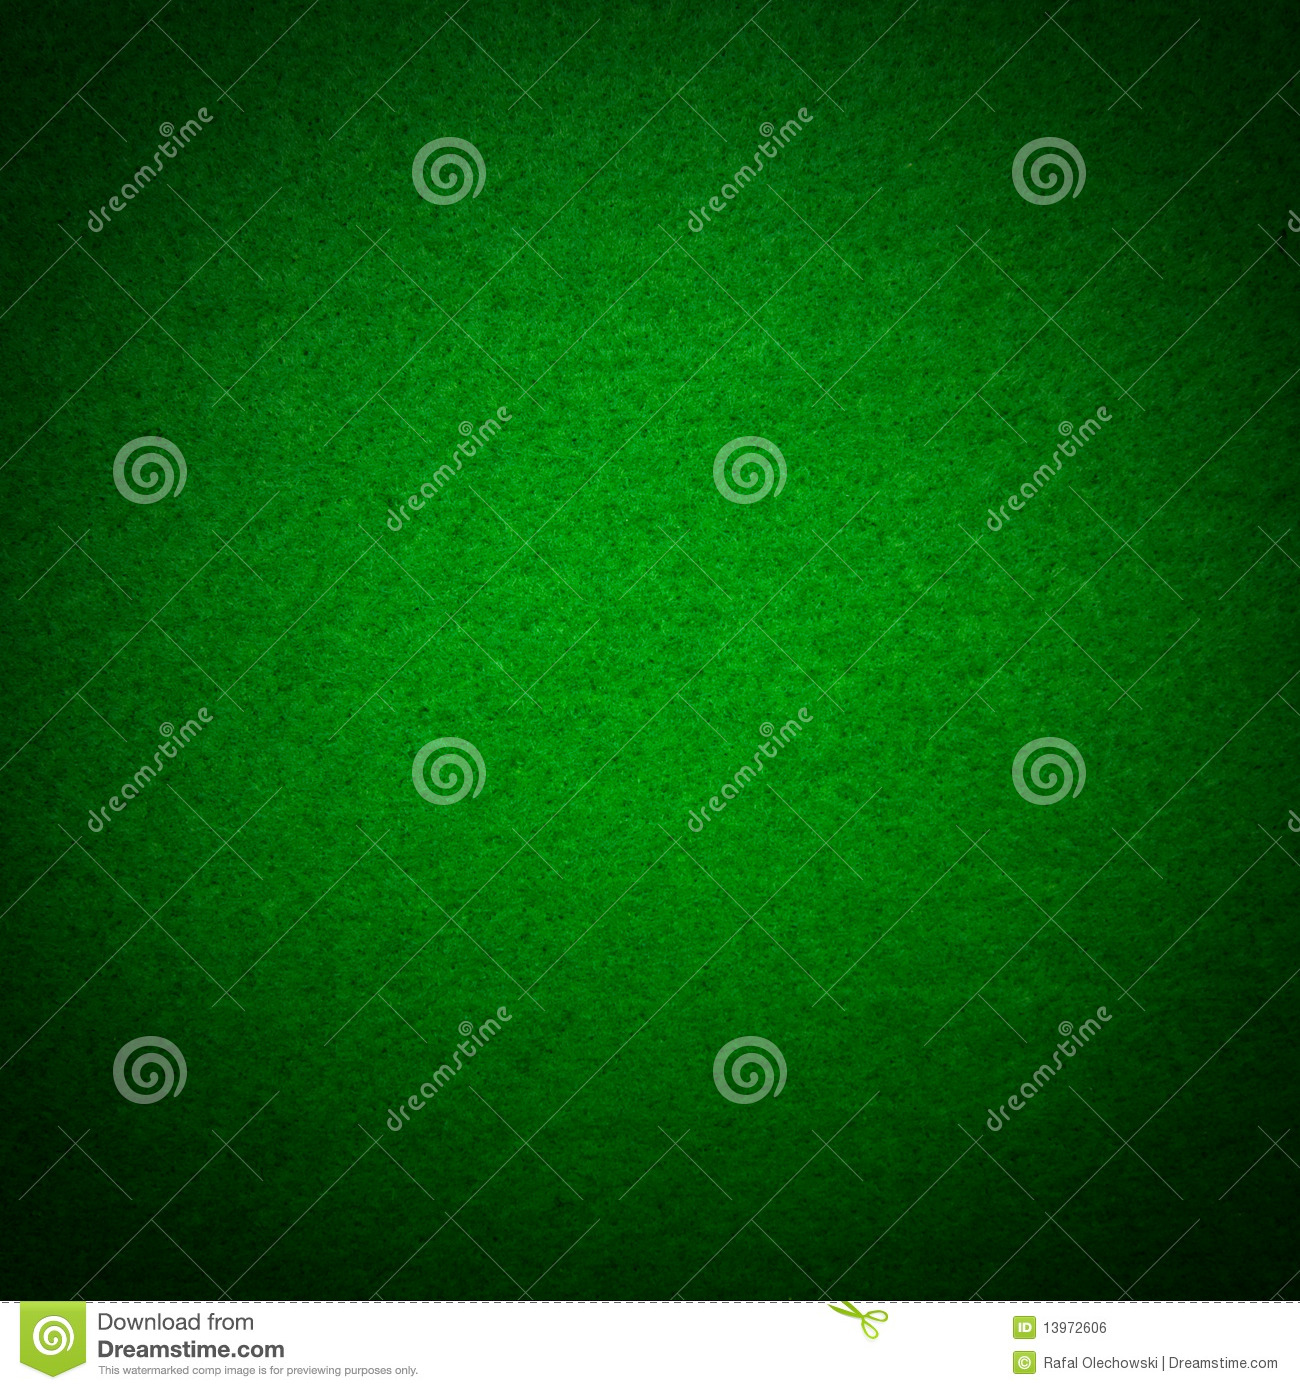 Poker table felt background royalty free stock image image 13972606